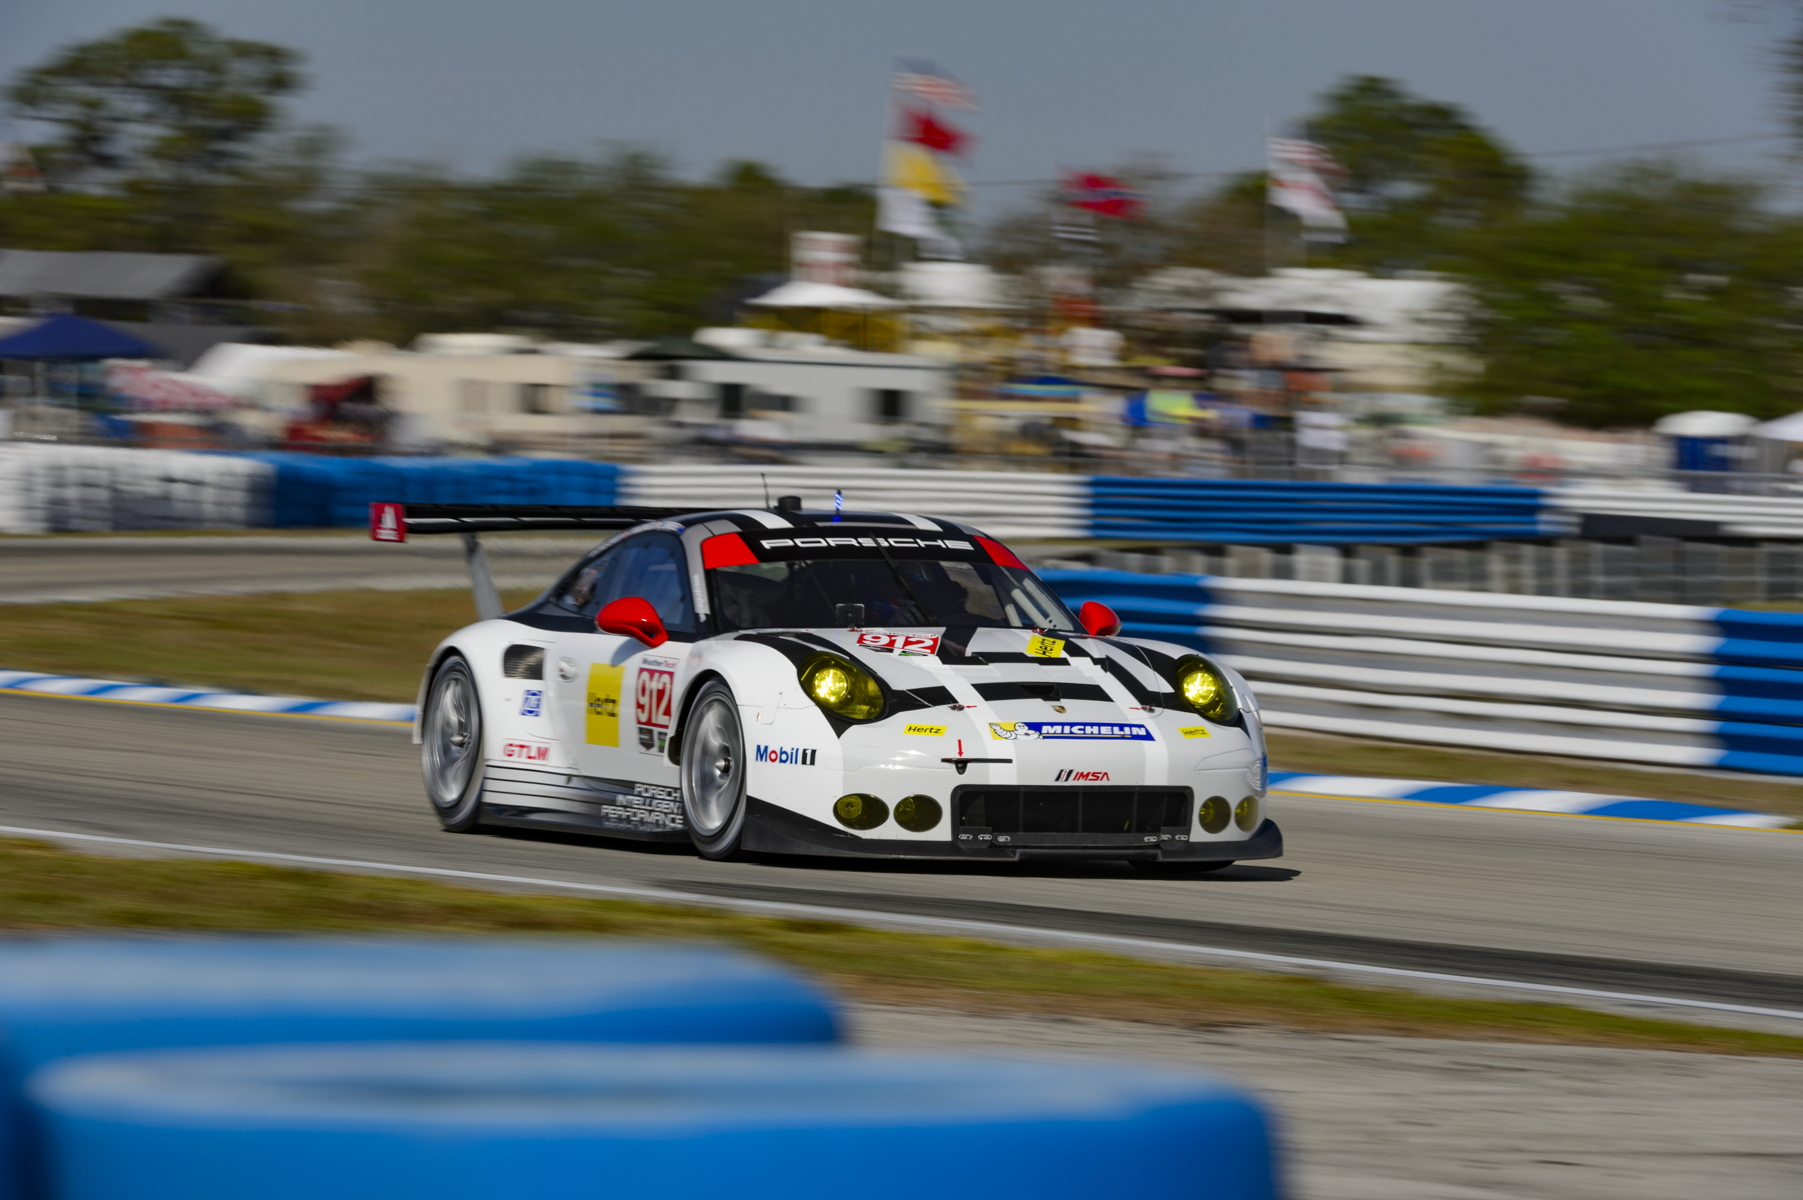 Friday practice saw the no. 912 machine set the faster time of the two 911 RSRs however, the no. 911 car has been on a roll in qualifying.